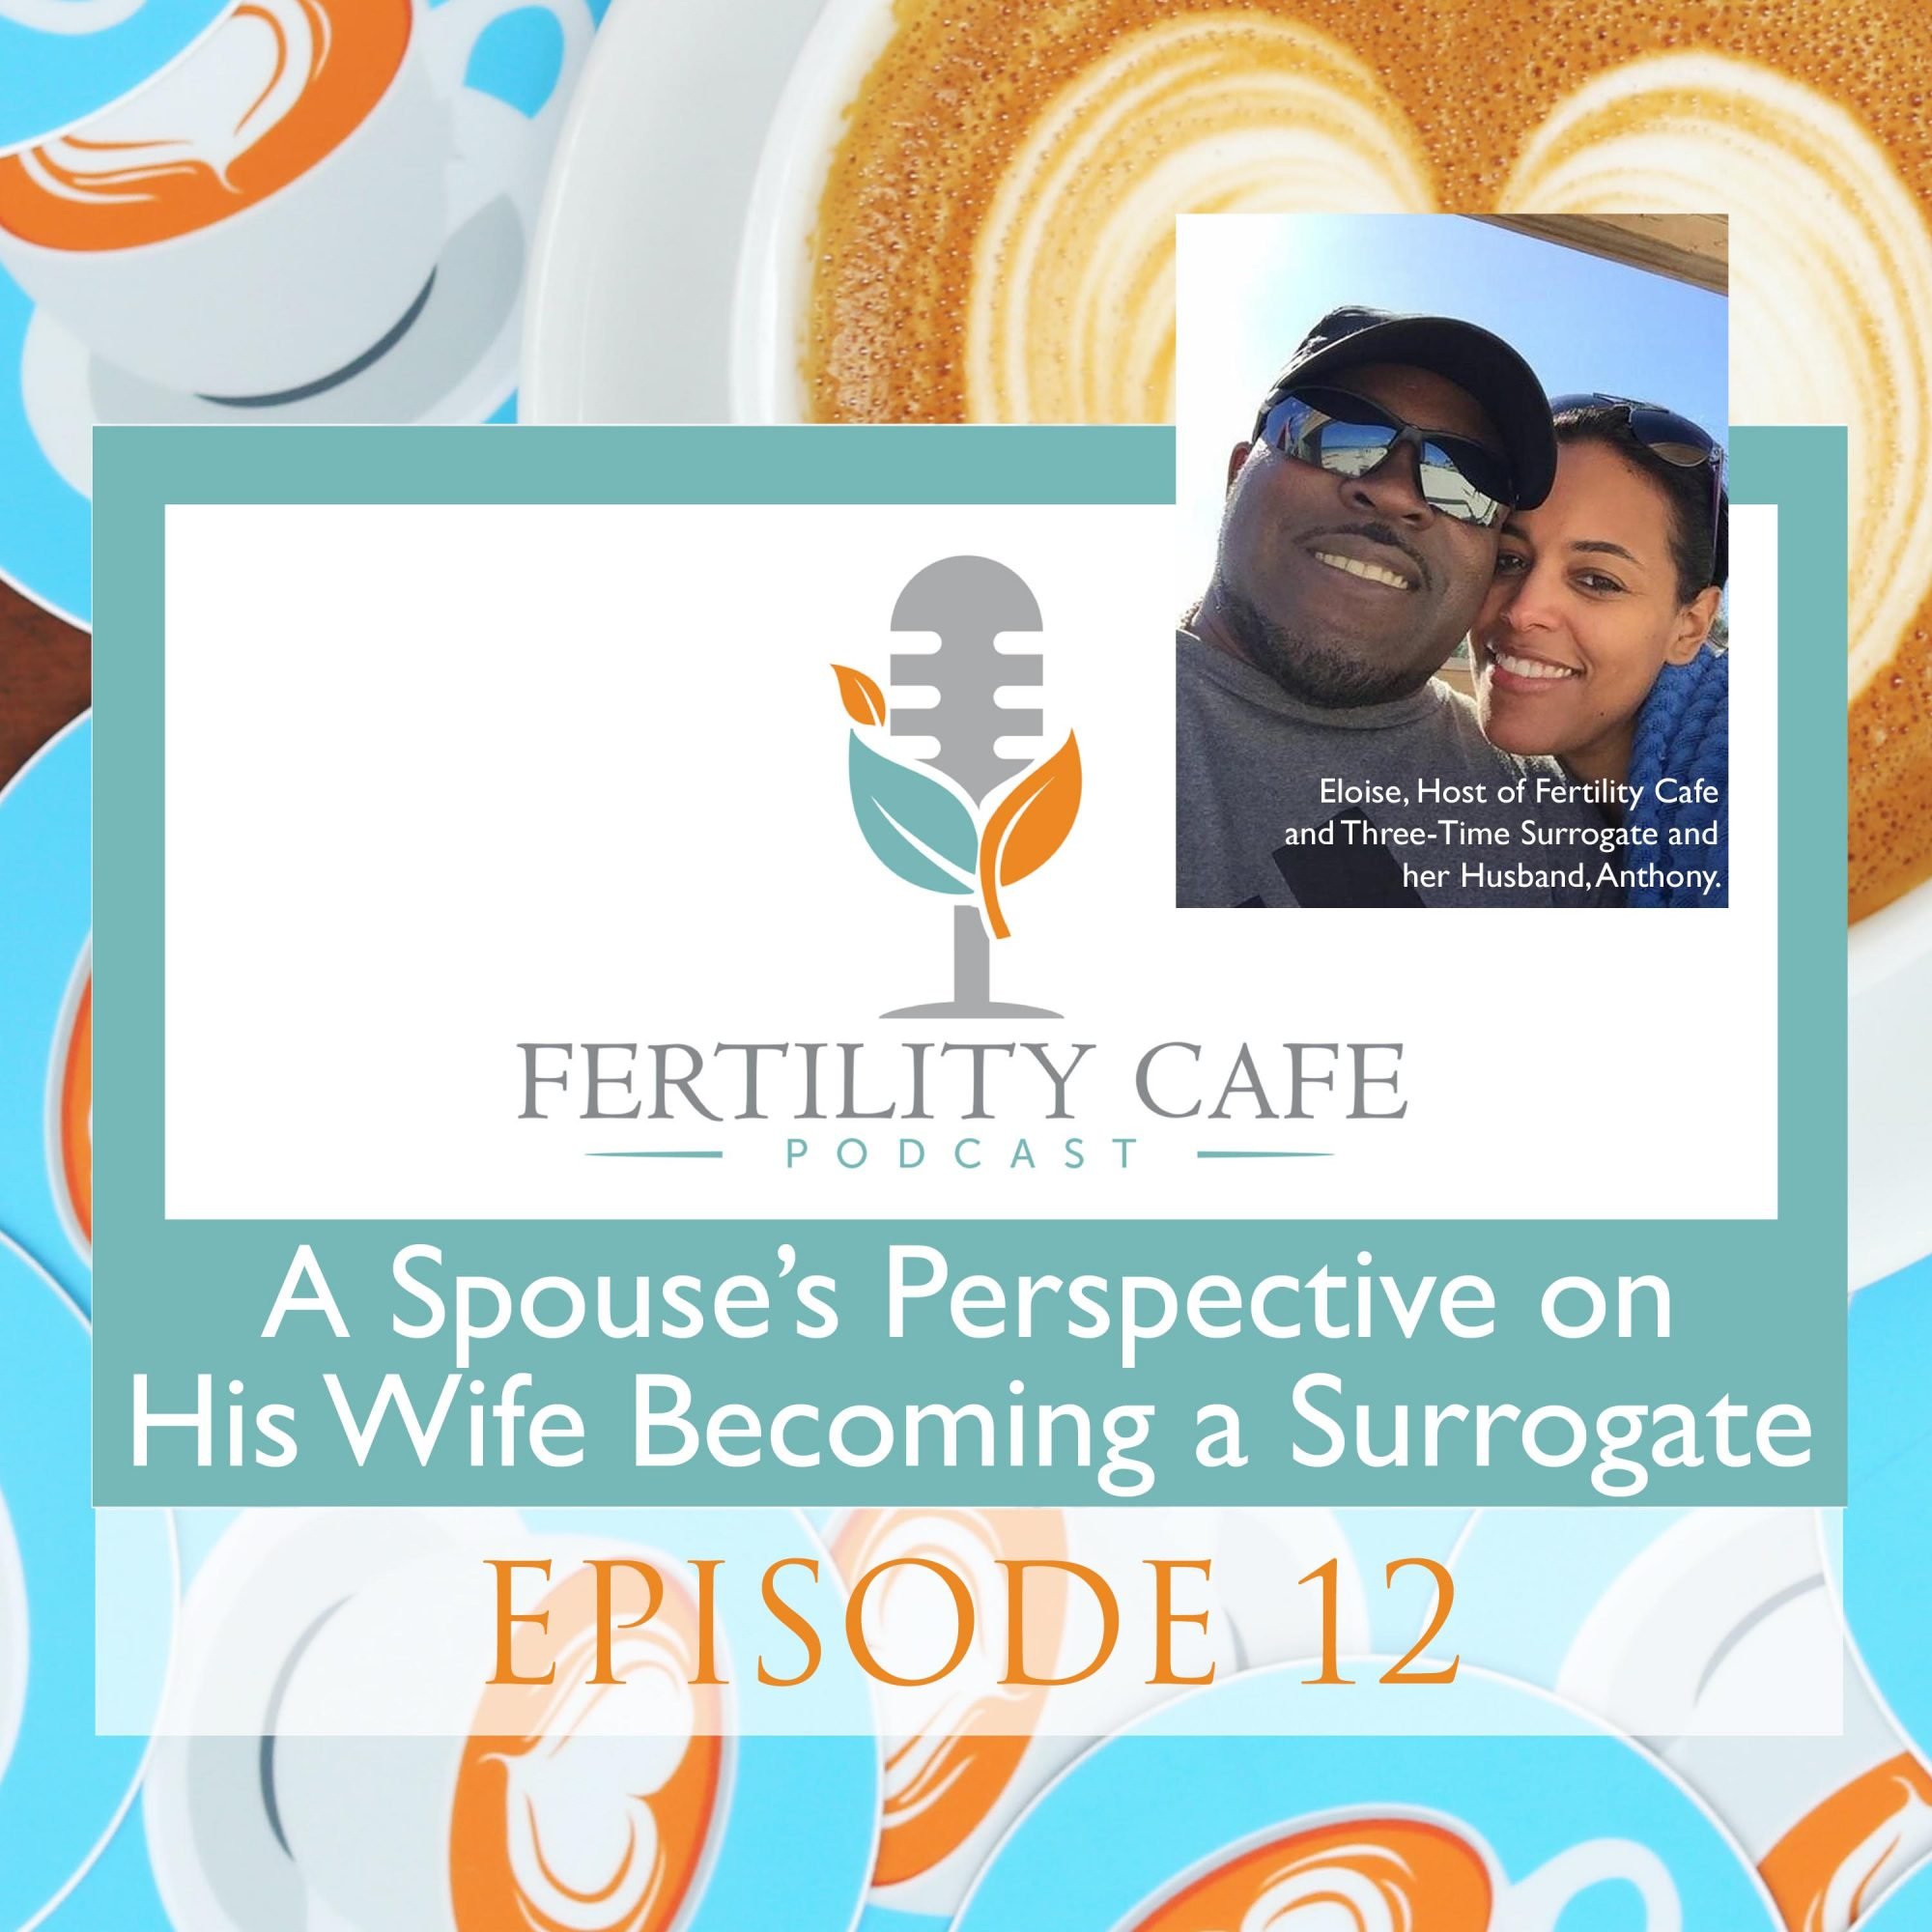 A spouse's perspective on his wife becoming a surrogate